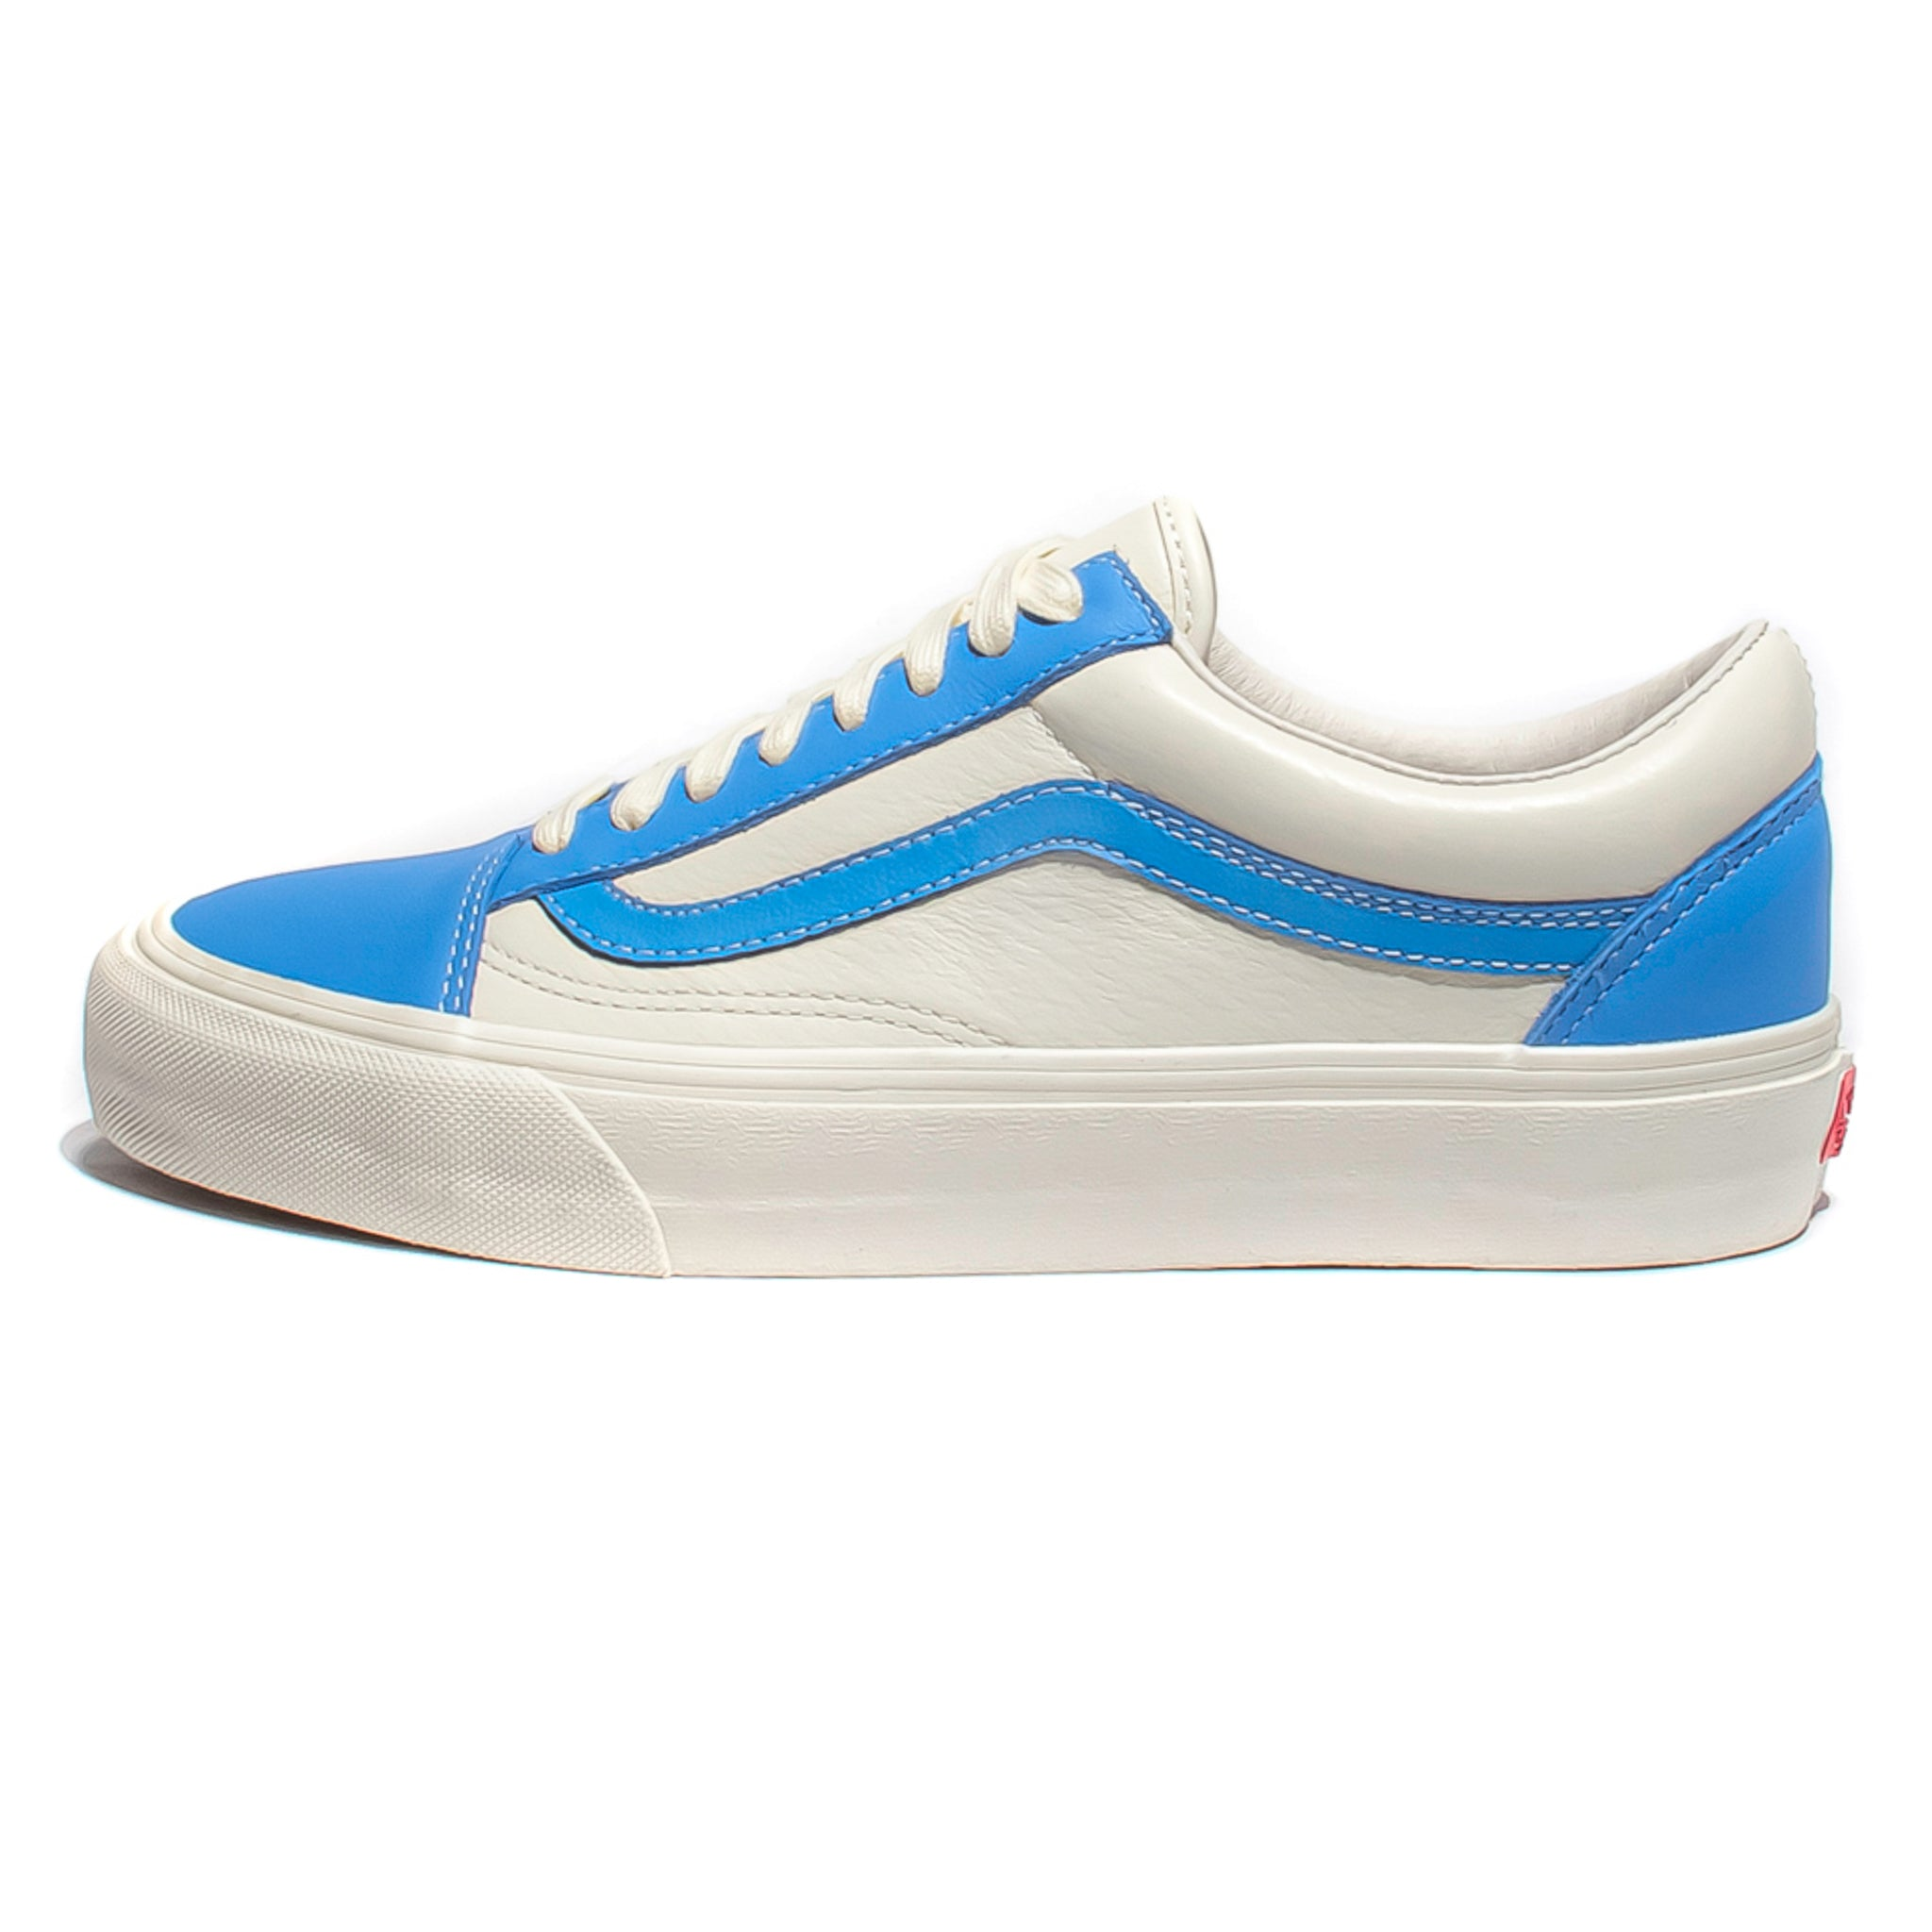 Vans Vault Old Skool VLT LX Bonnie Blue/Marshmallow